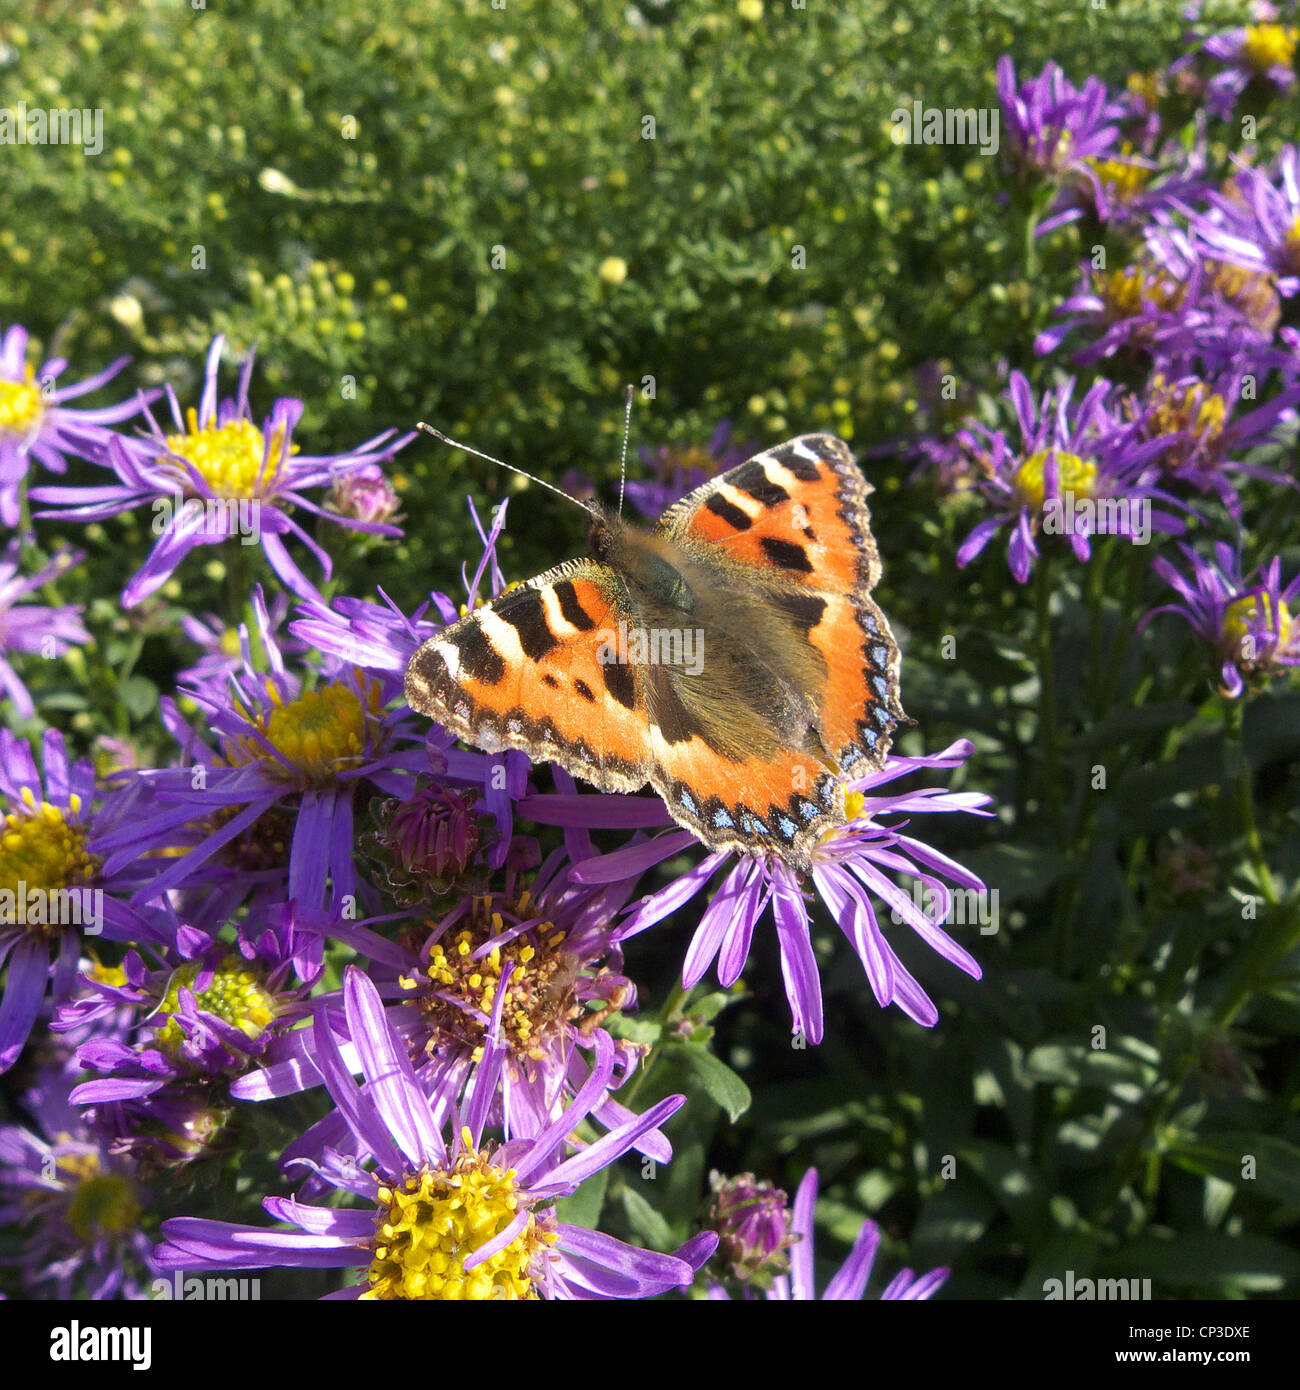 Small Tortoiseshell Butterfly (Aglais urticae) Feeding/Perched on an Aster amellus flower (Michaelmas Daisy) - Stock Image